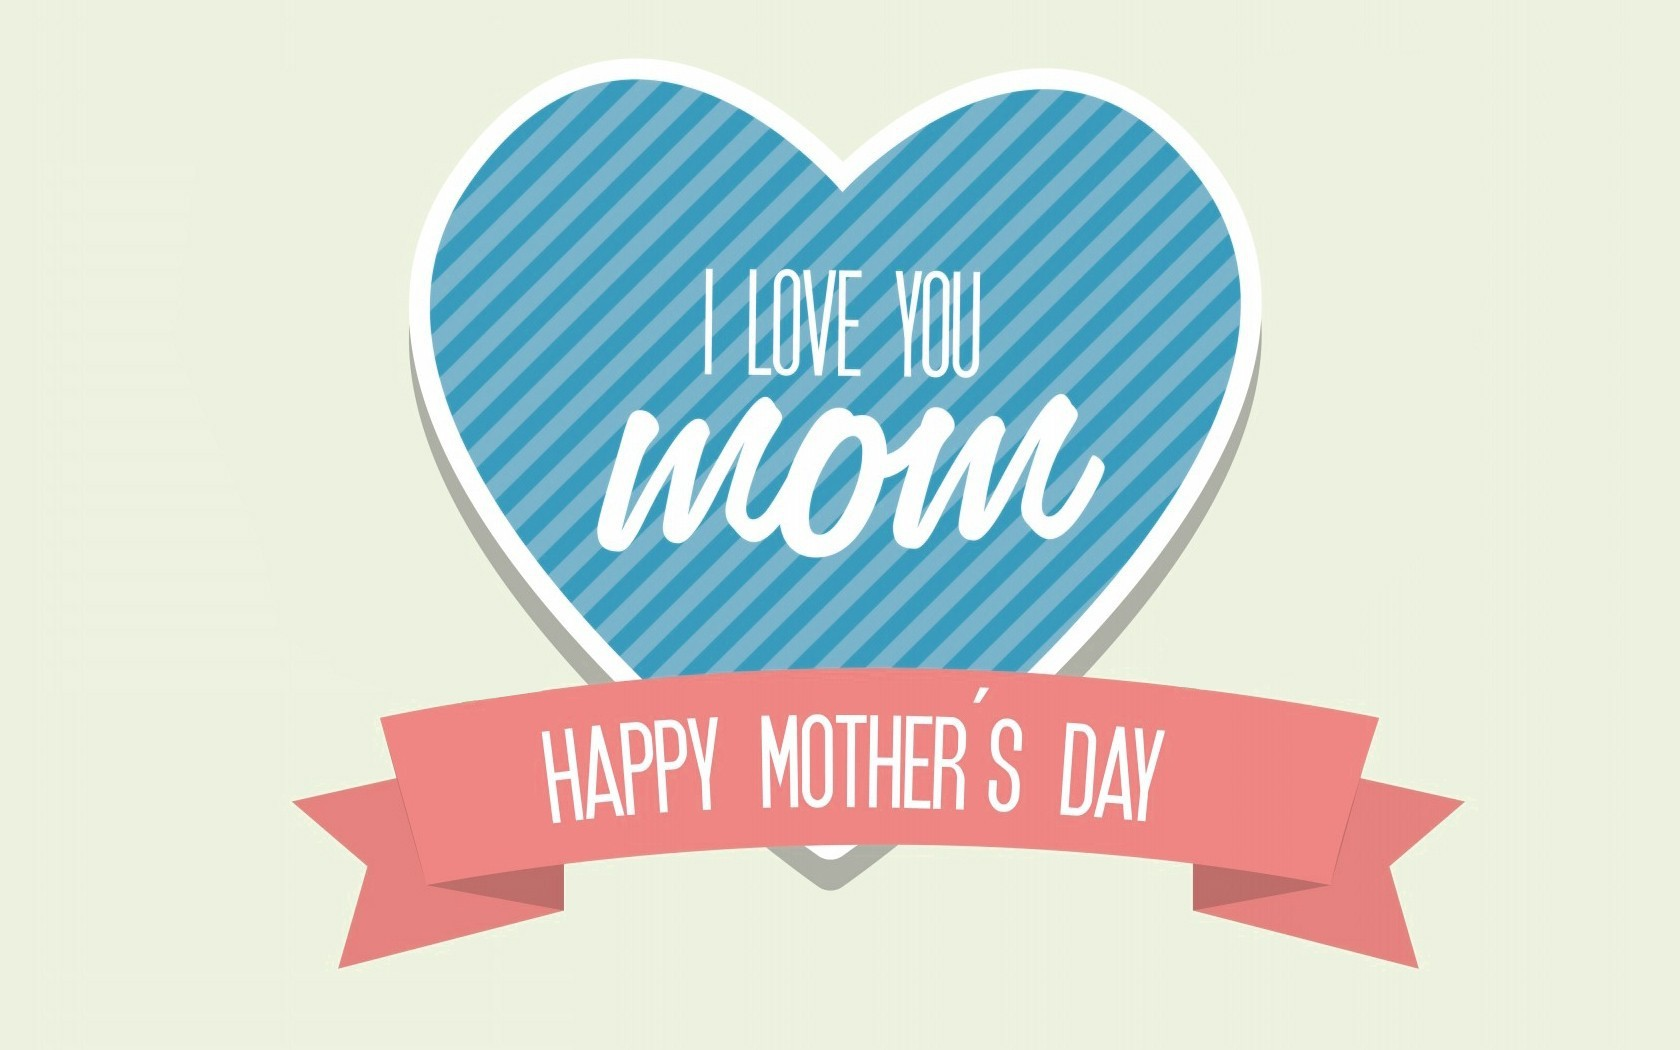 happy mothers day cards images quotes pictures download